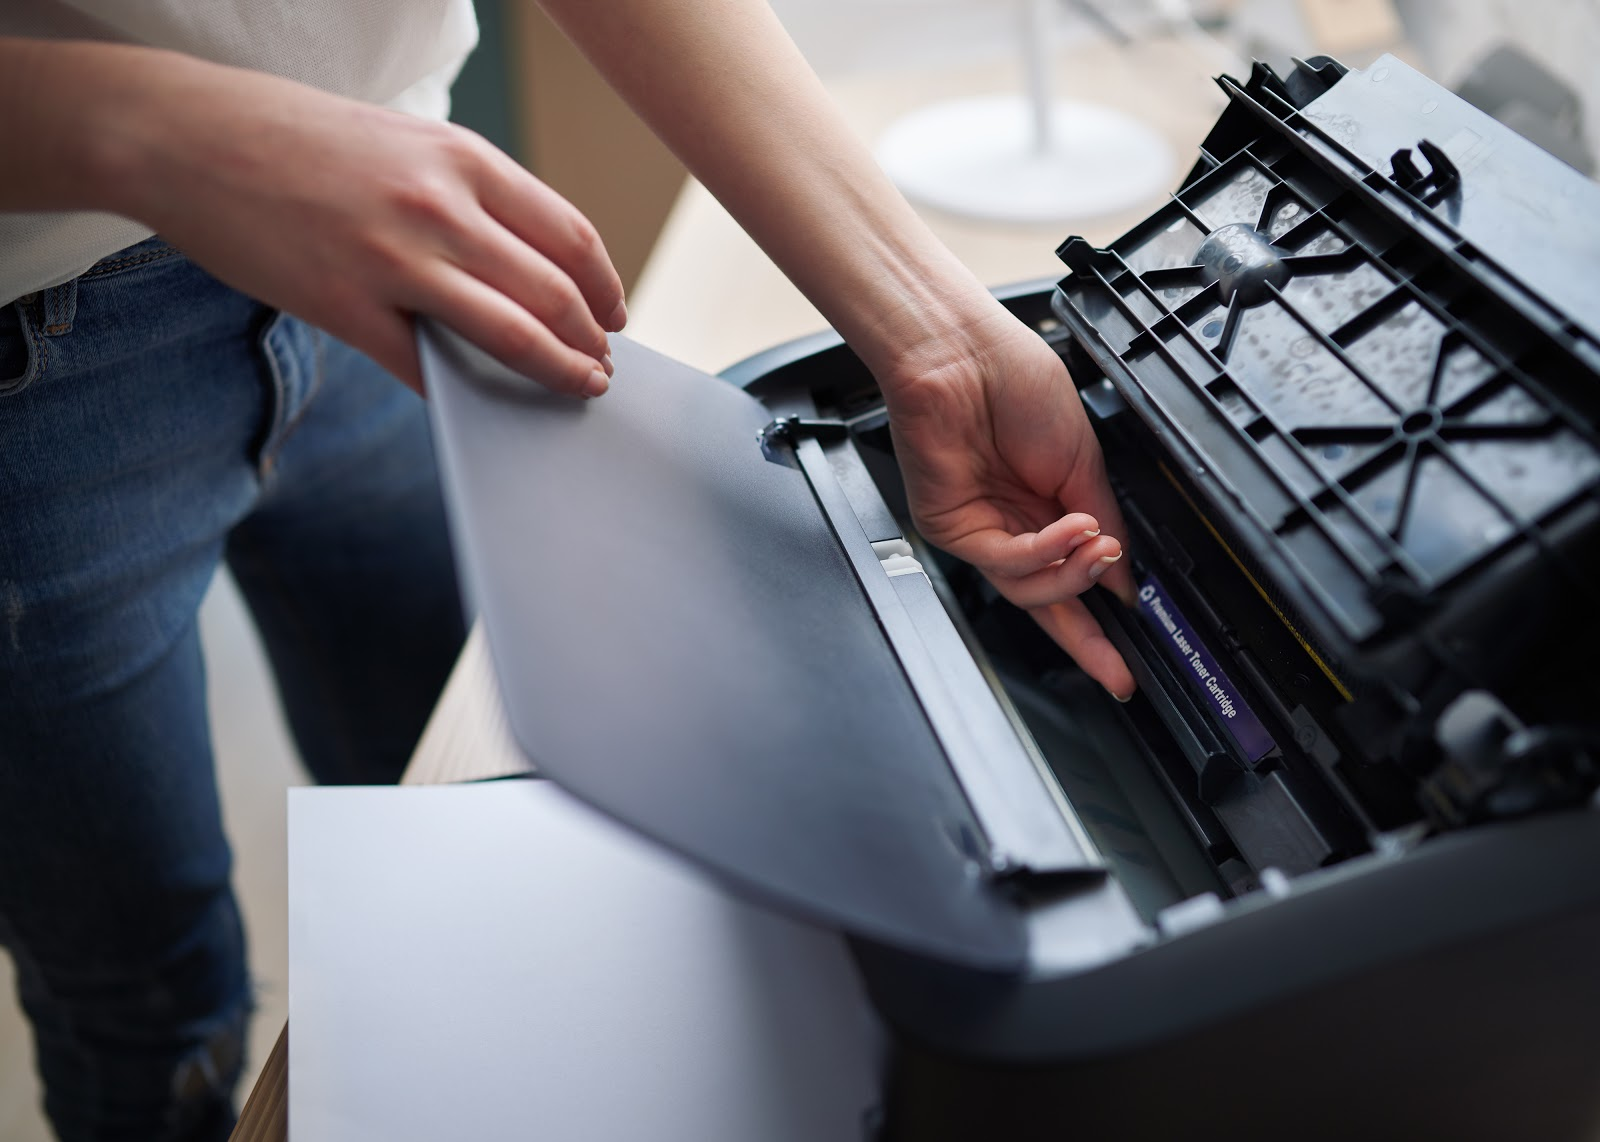 replacement-of-the-cartridge-in-laser-printer-UVW6XAC-1